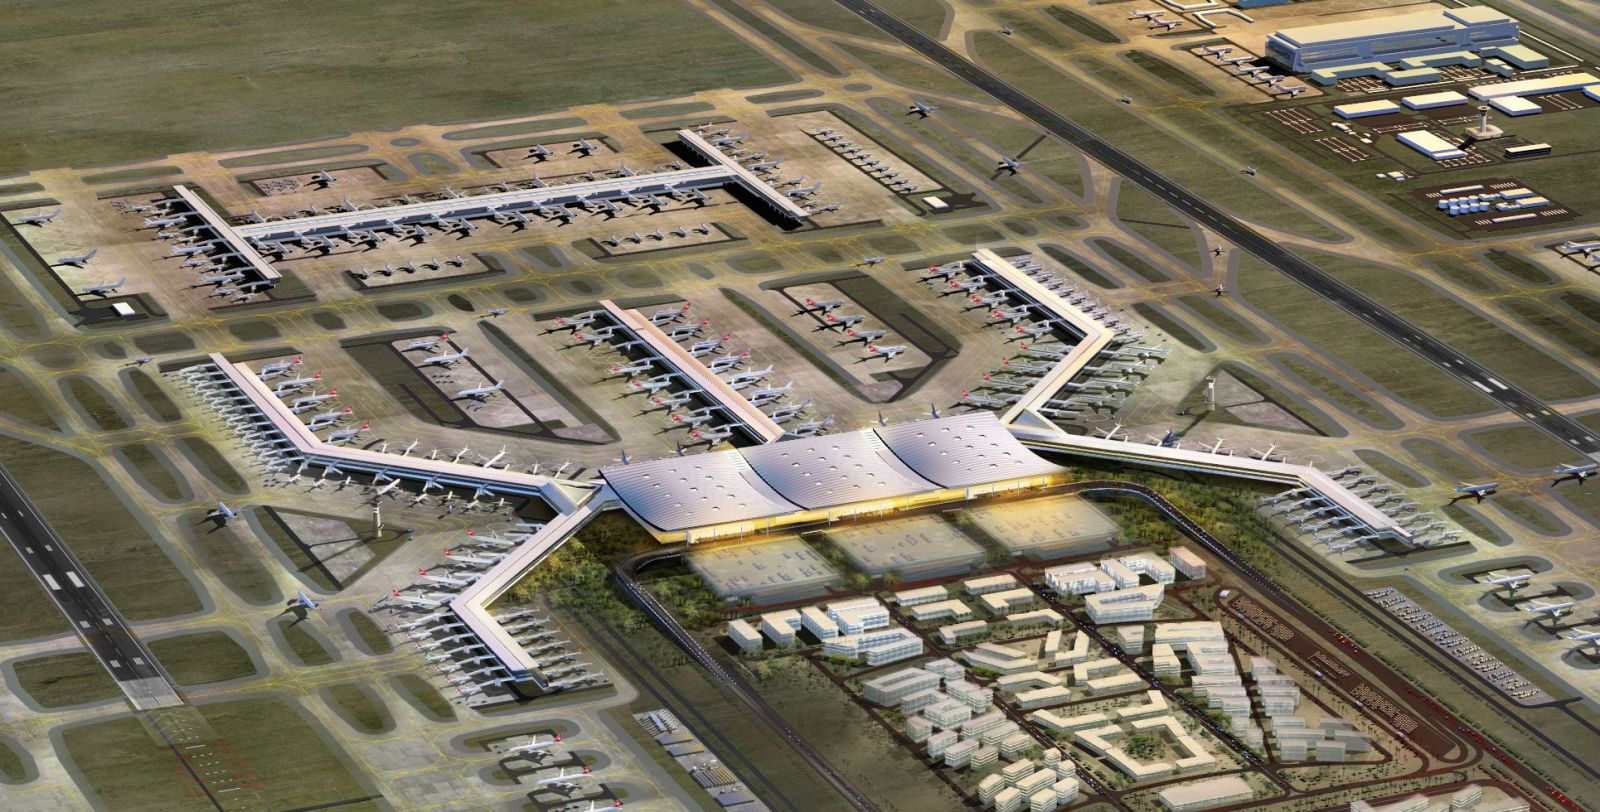 Third Airport of Istanbul Will Increase Tourism in Turkey